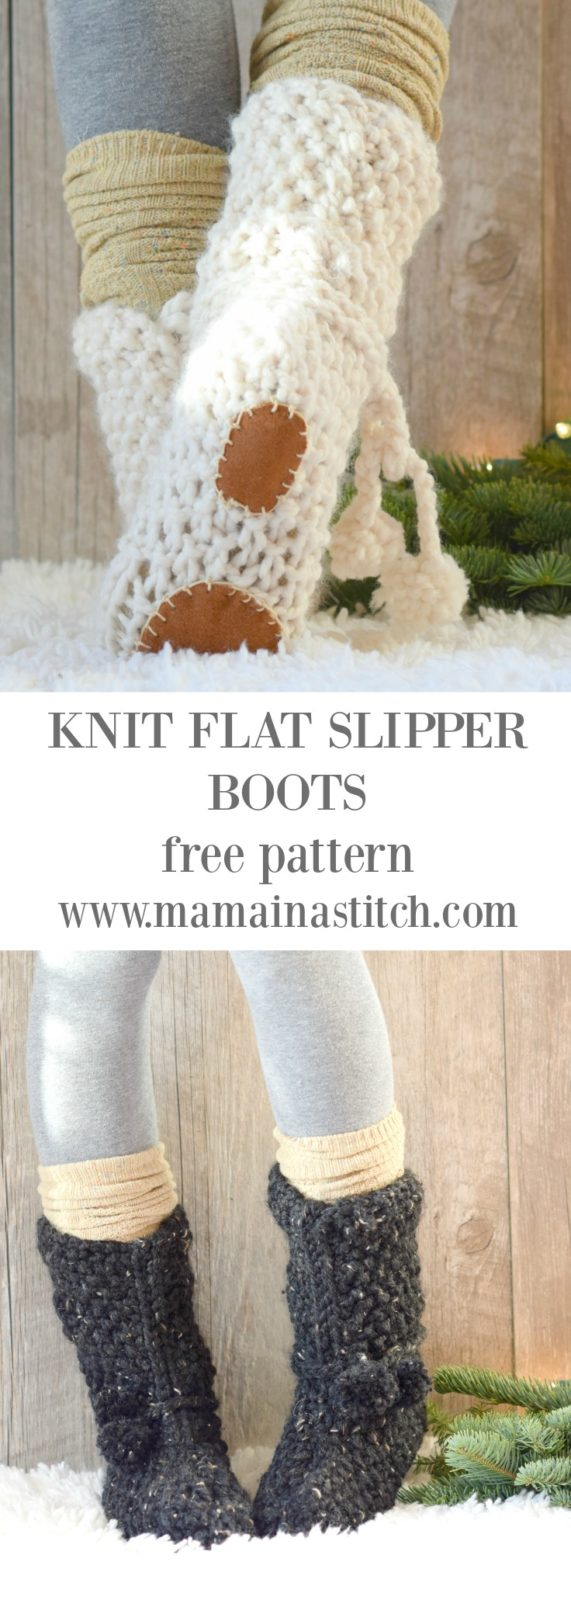 Free Patterns For Knitted Slippers Mountain Chalet Boot Slipper Knitting Pattern Knit Flat Mama In